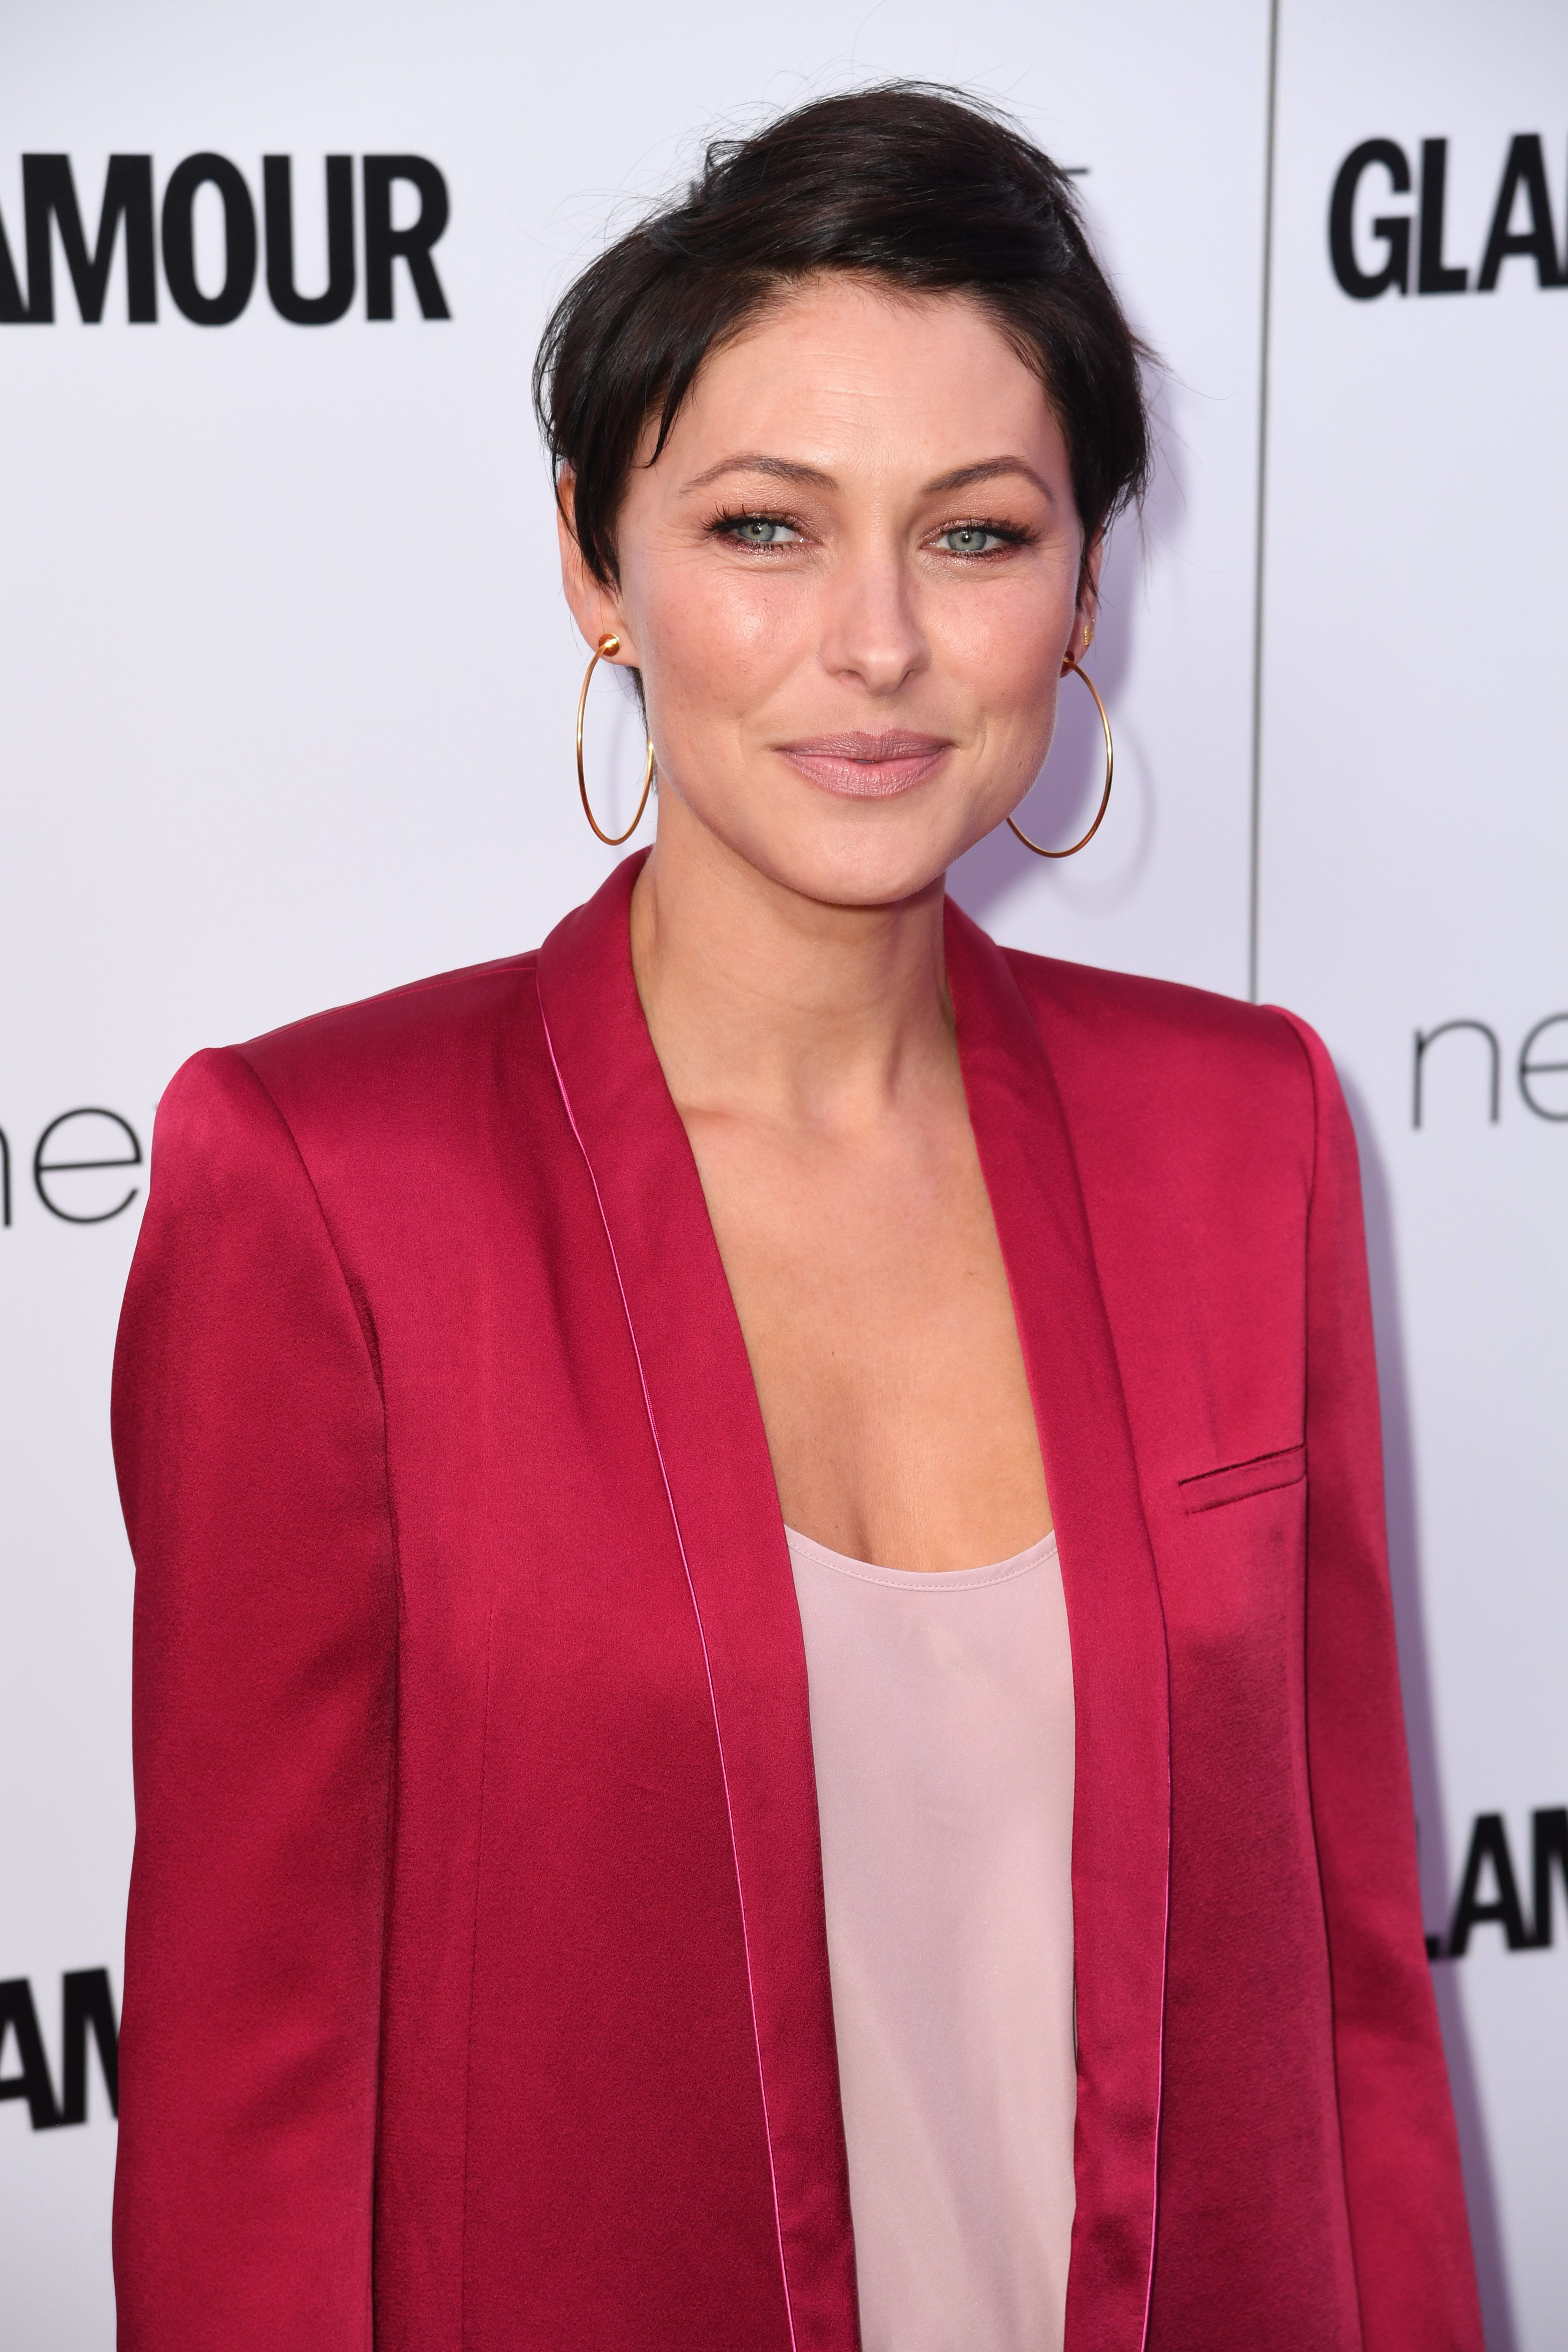 Emma Willis To Host Simon Cowell's New Feelgood Primetime Show 'Your